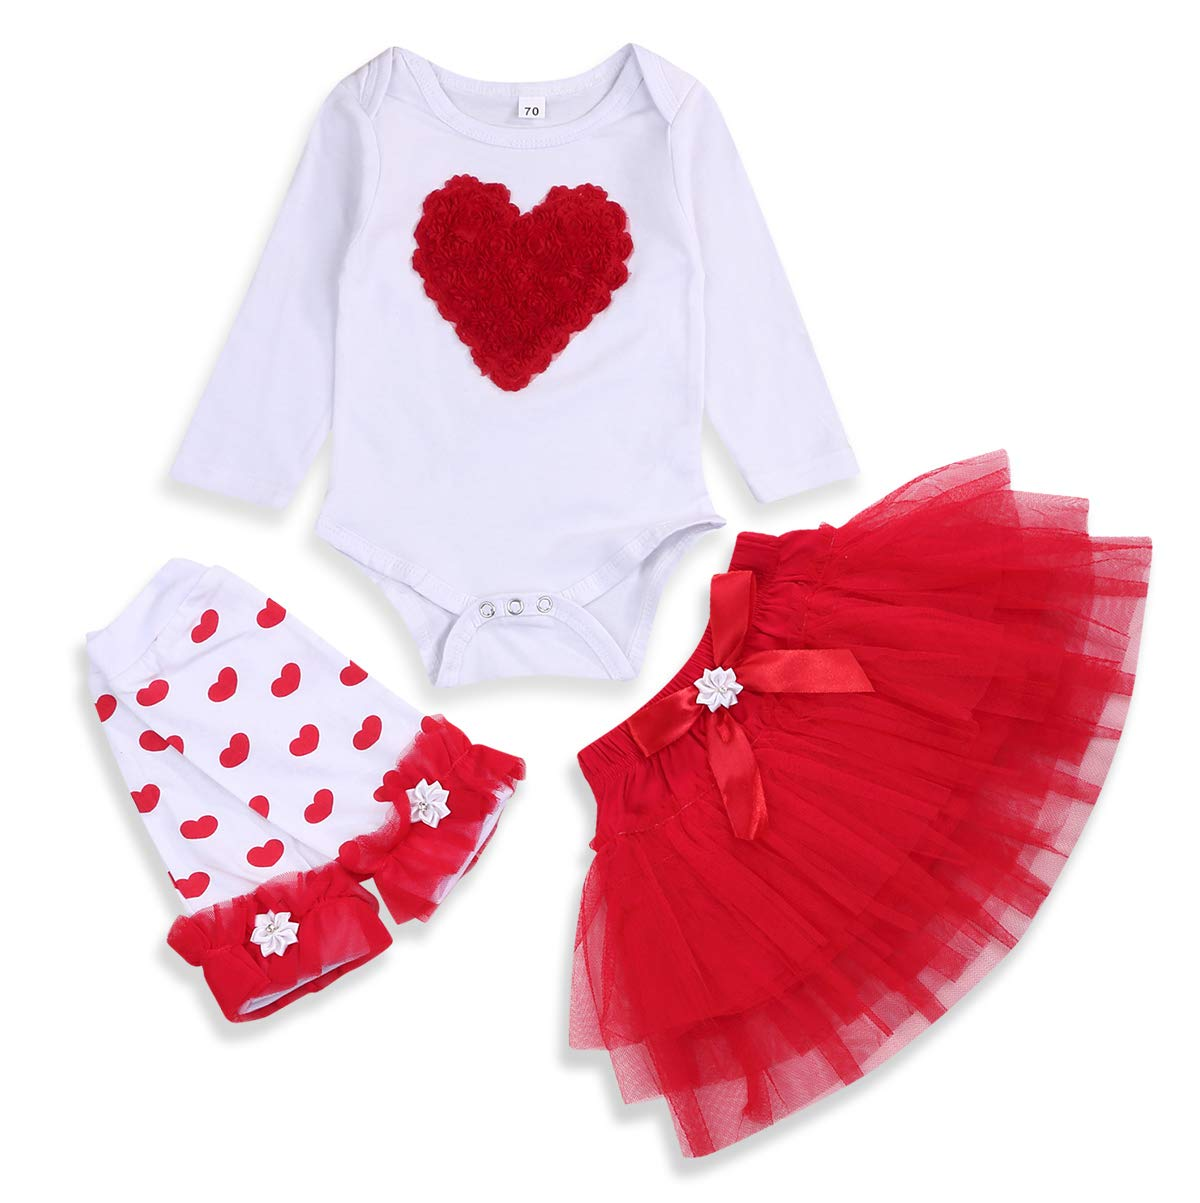 Newborn Infant Baby Girl Clothes Valentine's Day Love Heart Romper Top Tutu Skirt +Leg Warmers 3Pcs Outfits